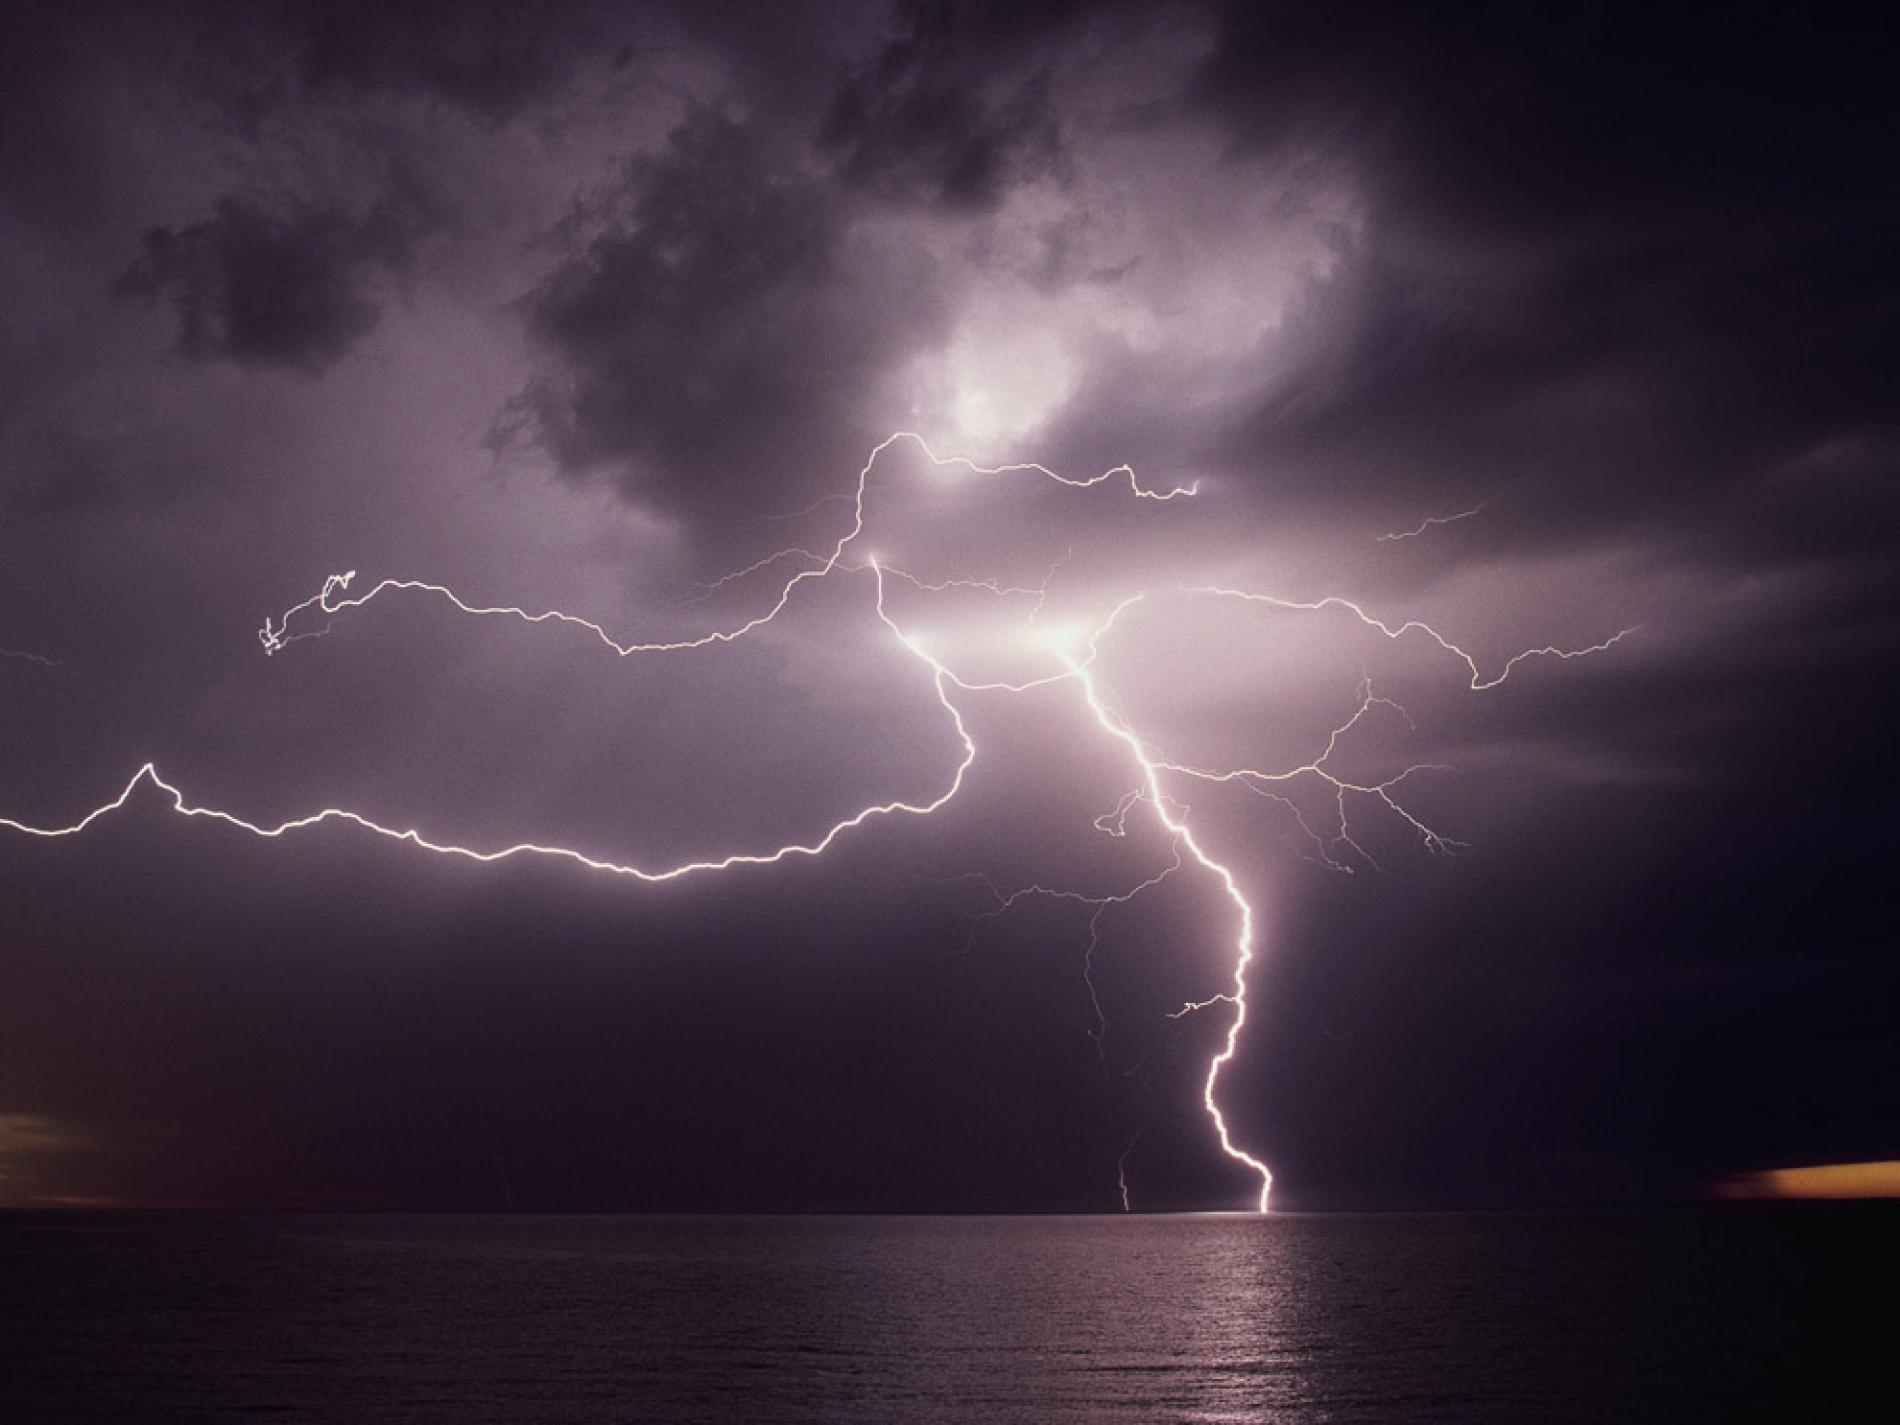 File: Lightning-Full HD Quality.jpg | Millard Novack